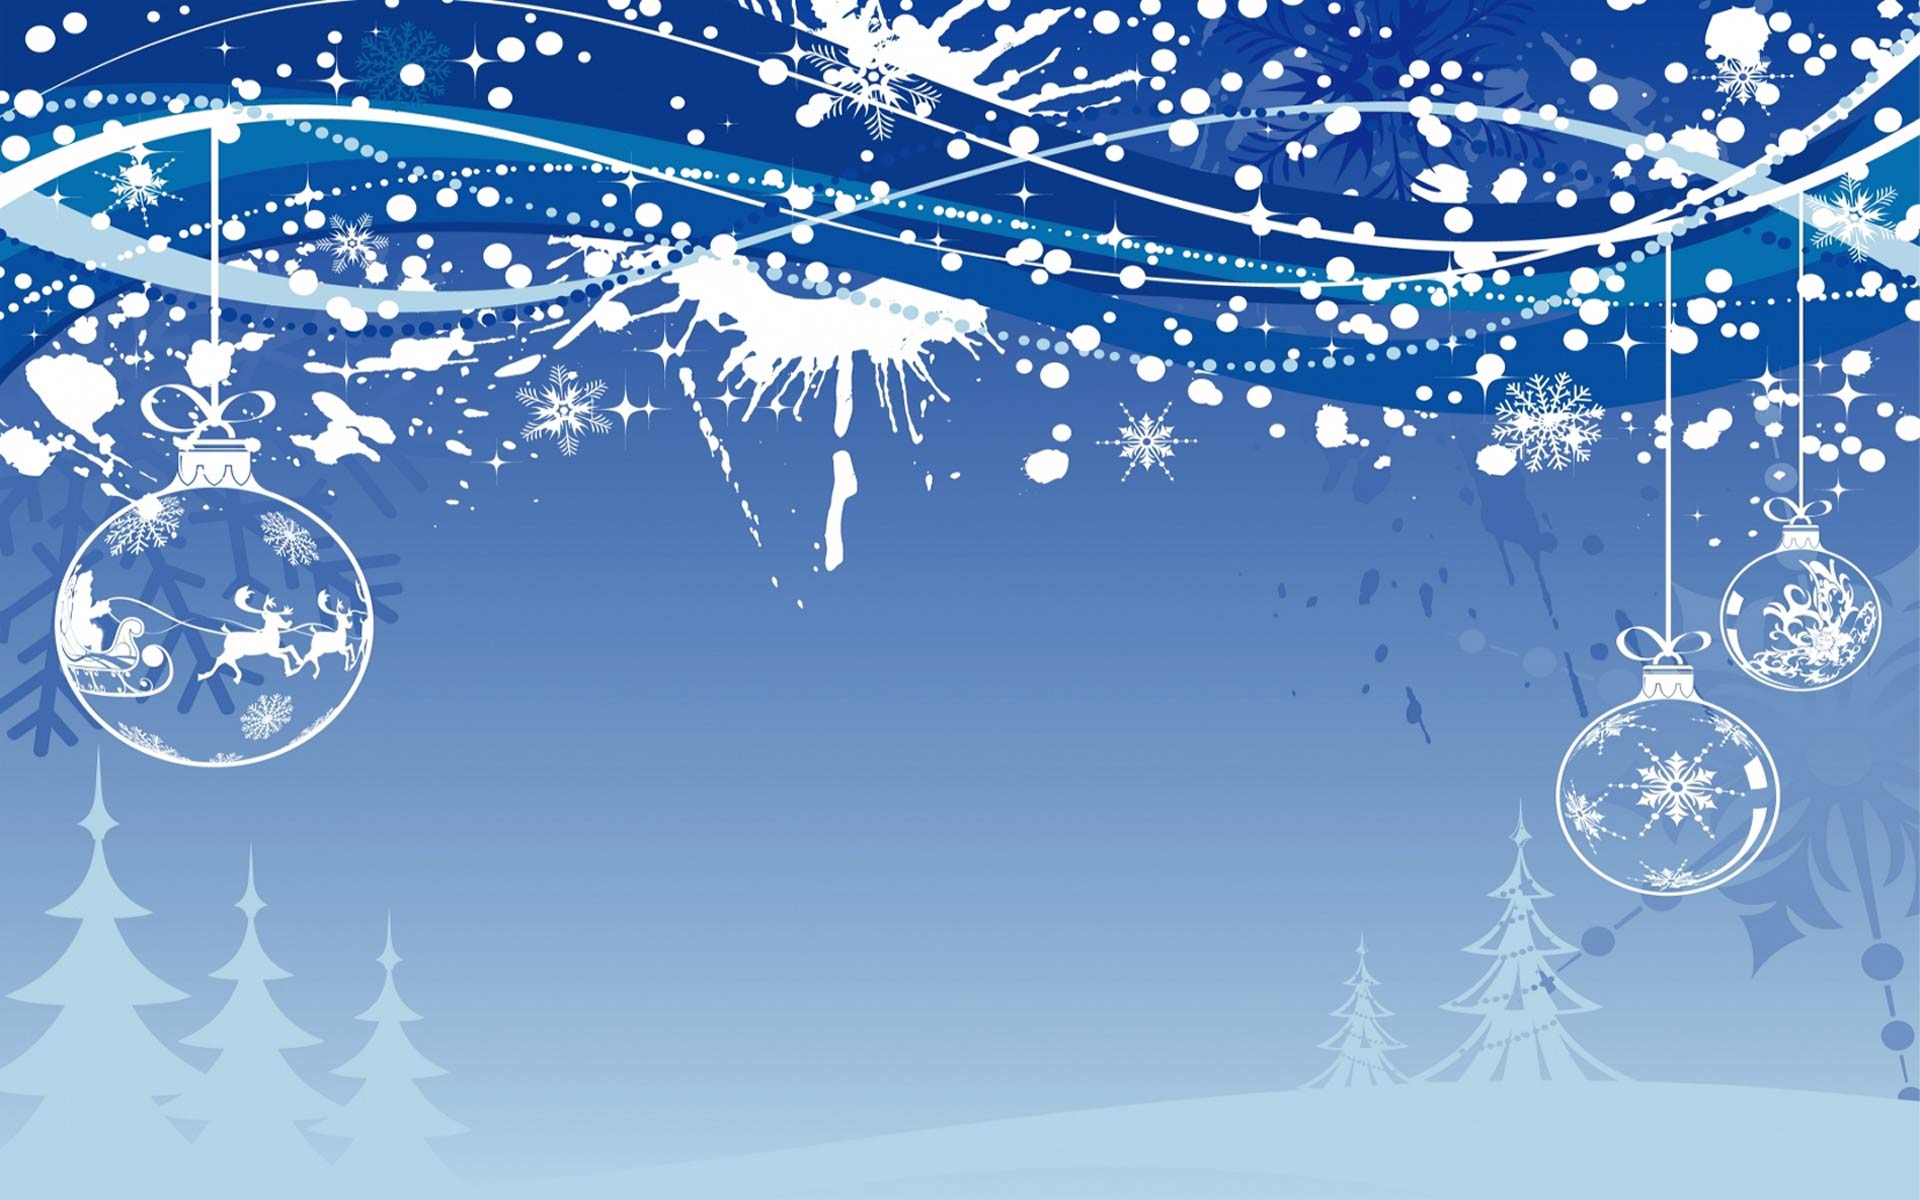 christmas-pictures-Widescreen-Christmas-to-Have-Logic-of-Count-Down-Timer-wallpaper-wpc5803468